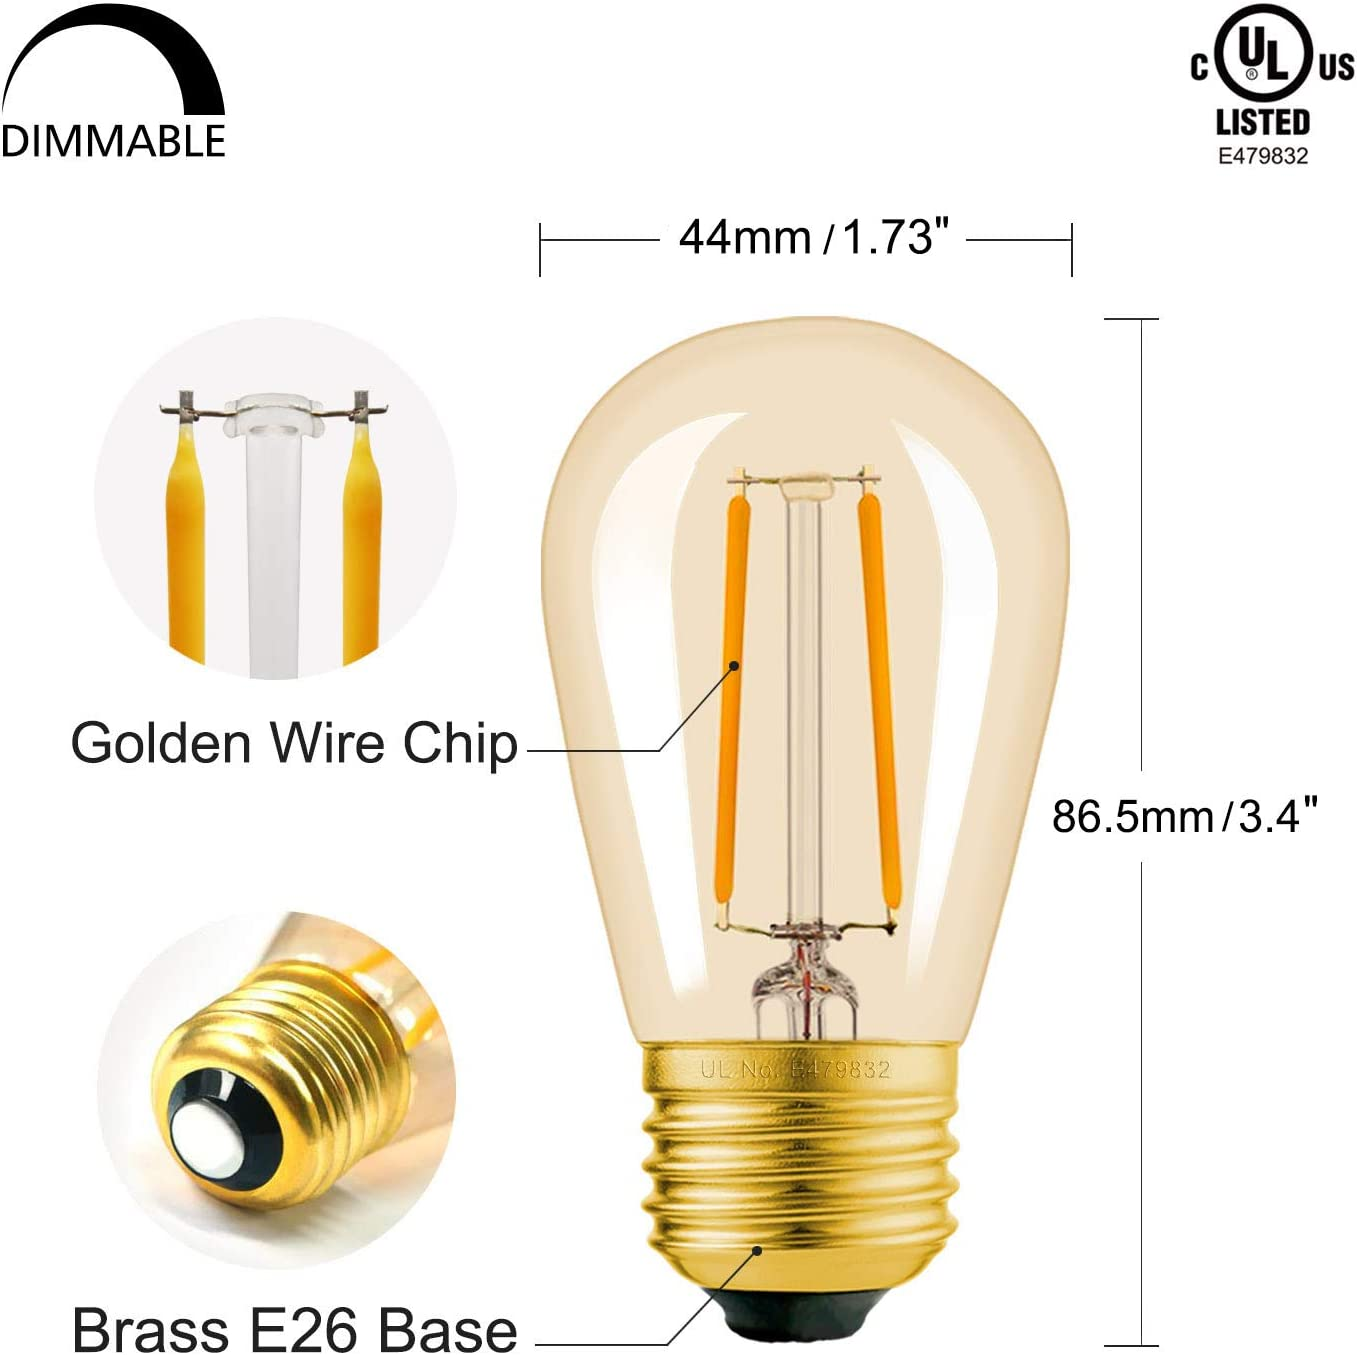 Luxsent S16 Theatre 1W Wedding 25 Pack Amusement Park Party Dining Area Medium Base Amber LED Decorative Bulb with Shine Line Light Bar 2200K Enlarged S14 Suitable for Outdoor Sign